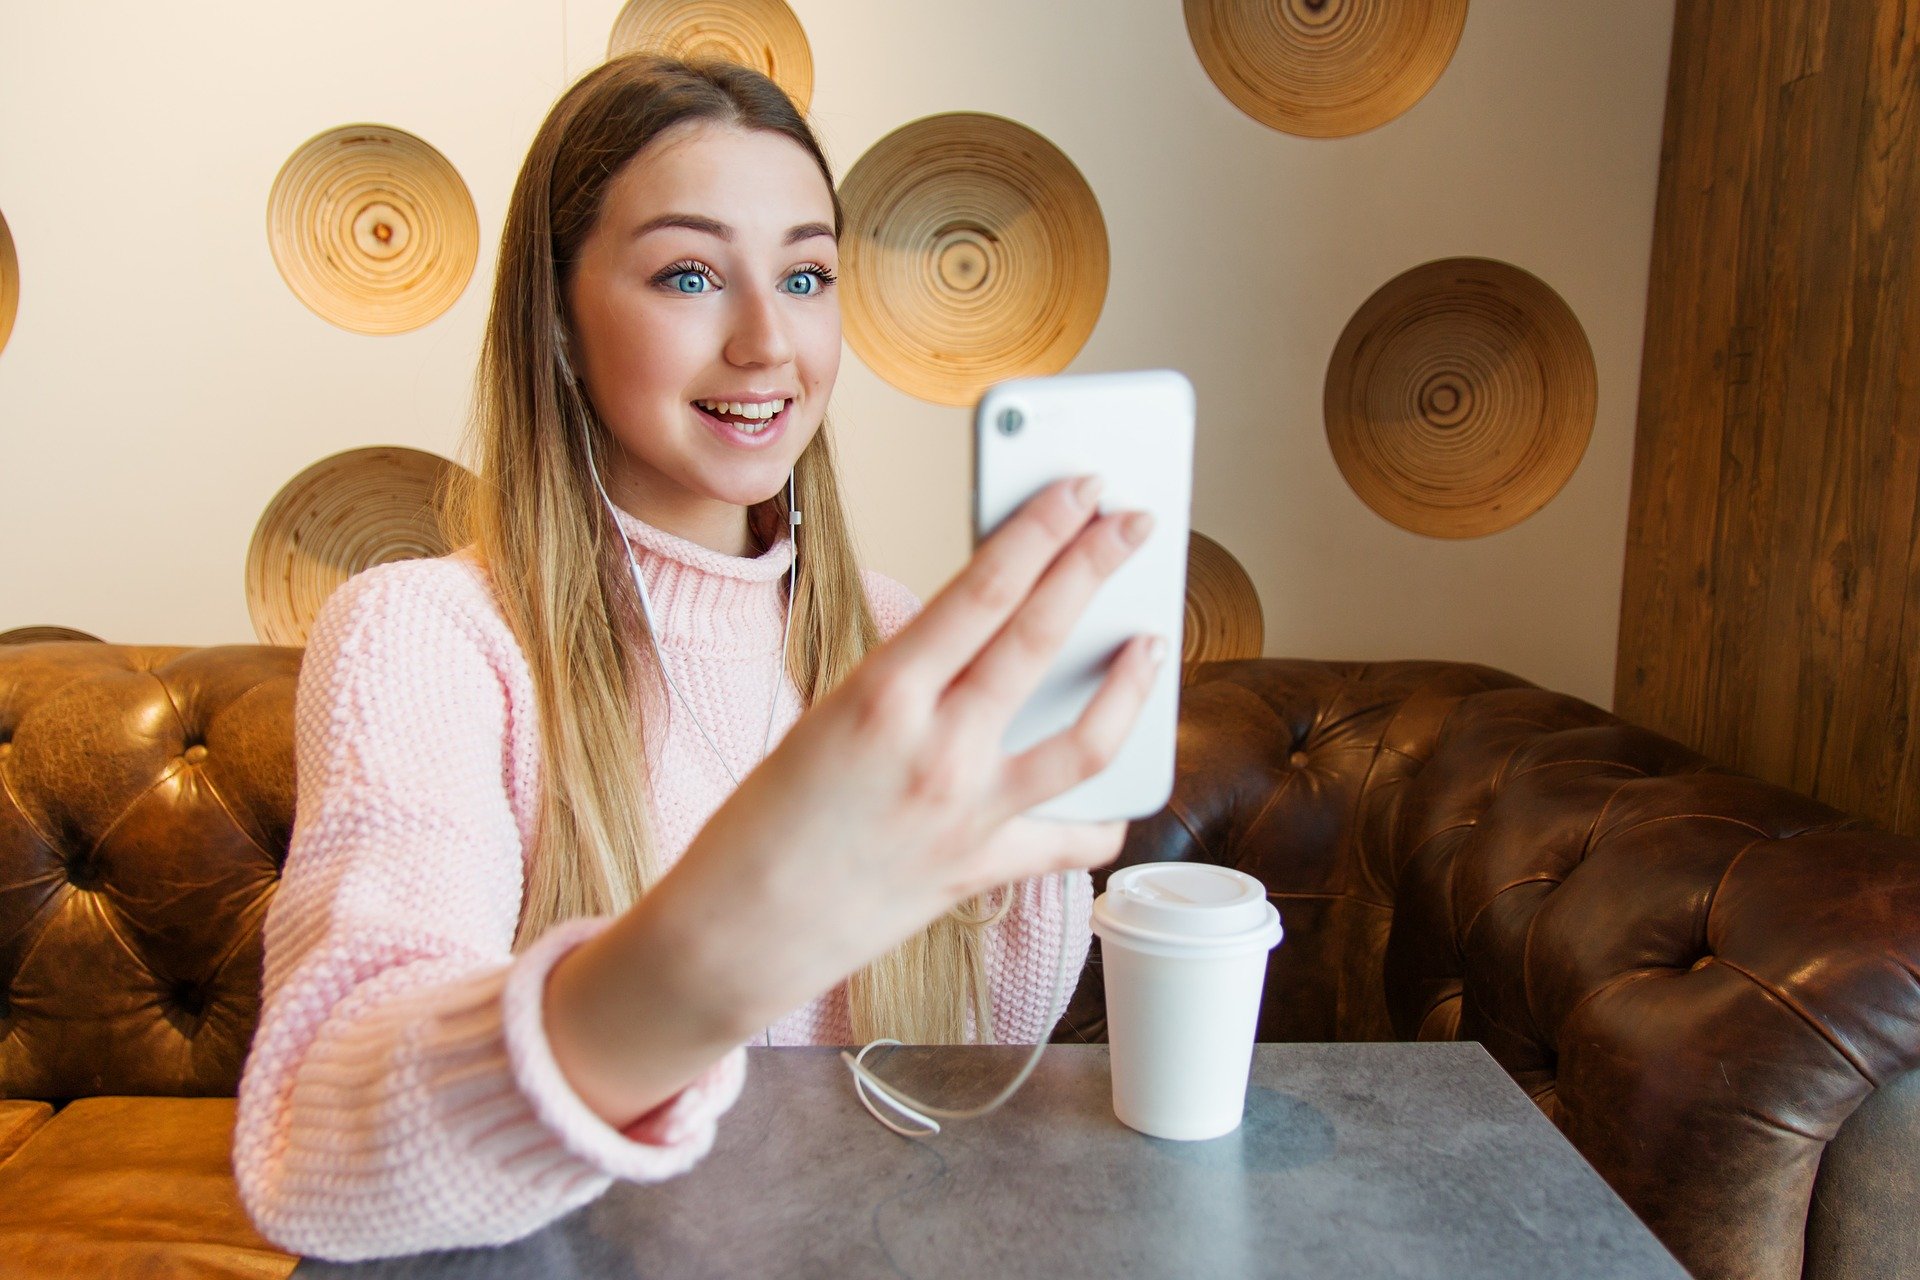 Girl sitting at table in cafe recording video message on phone.